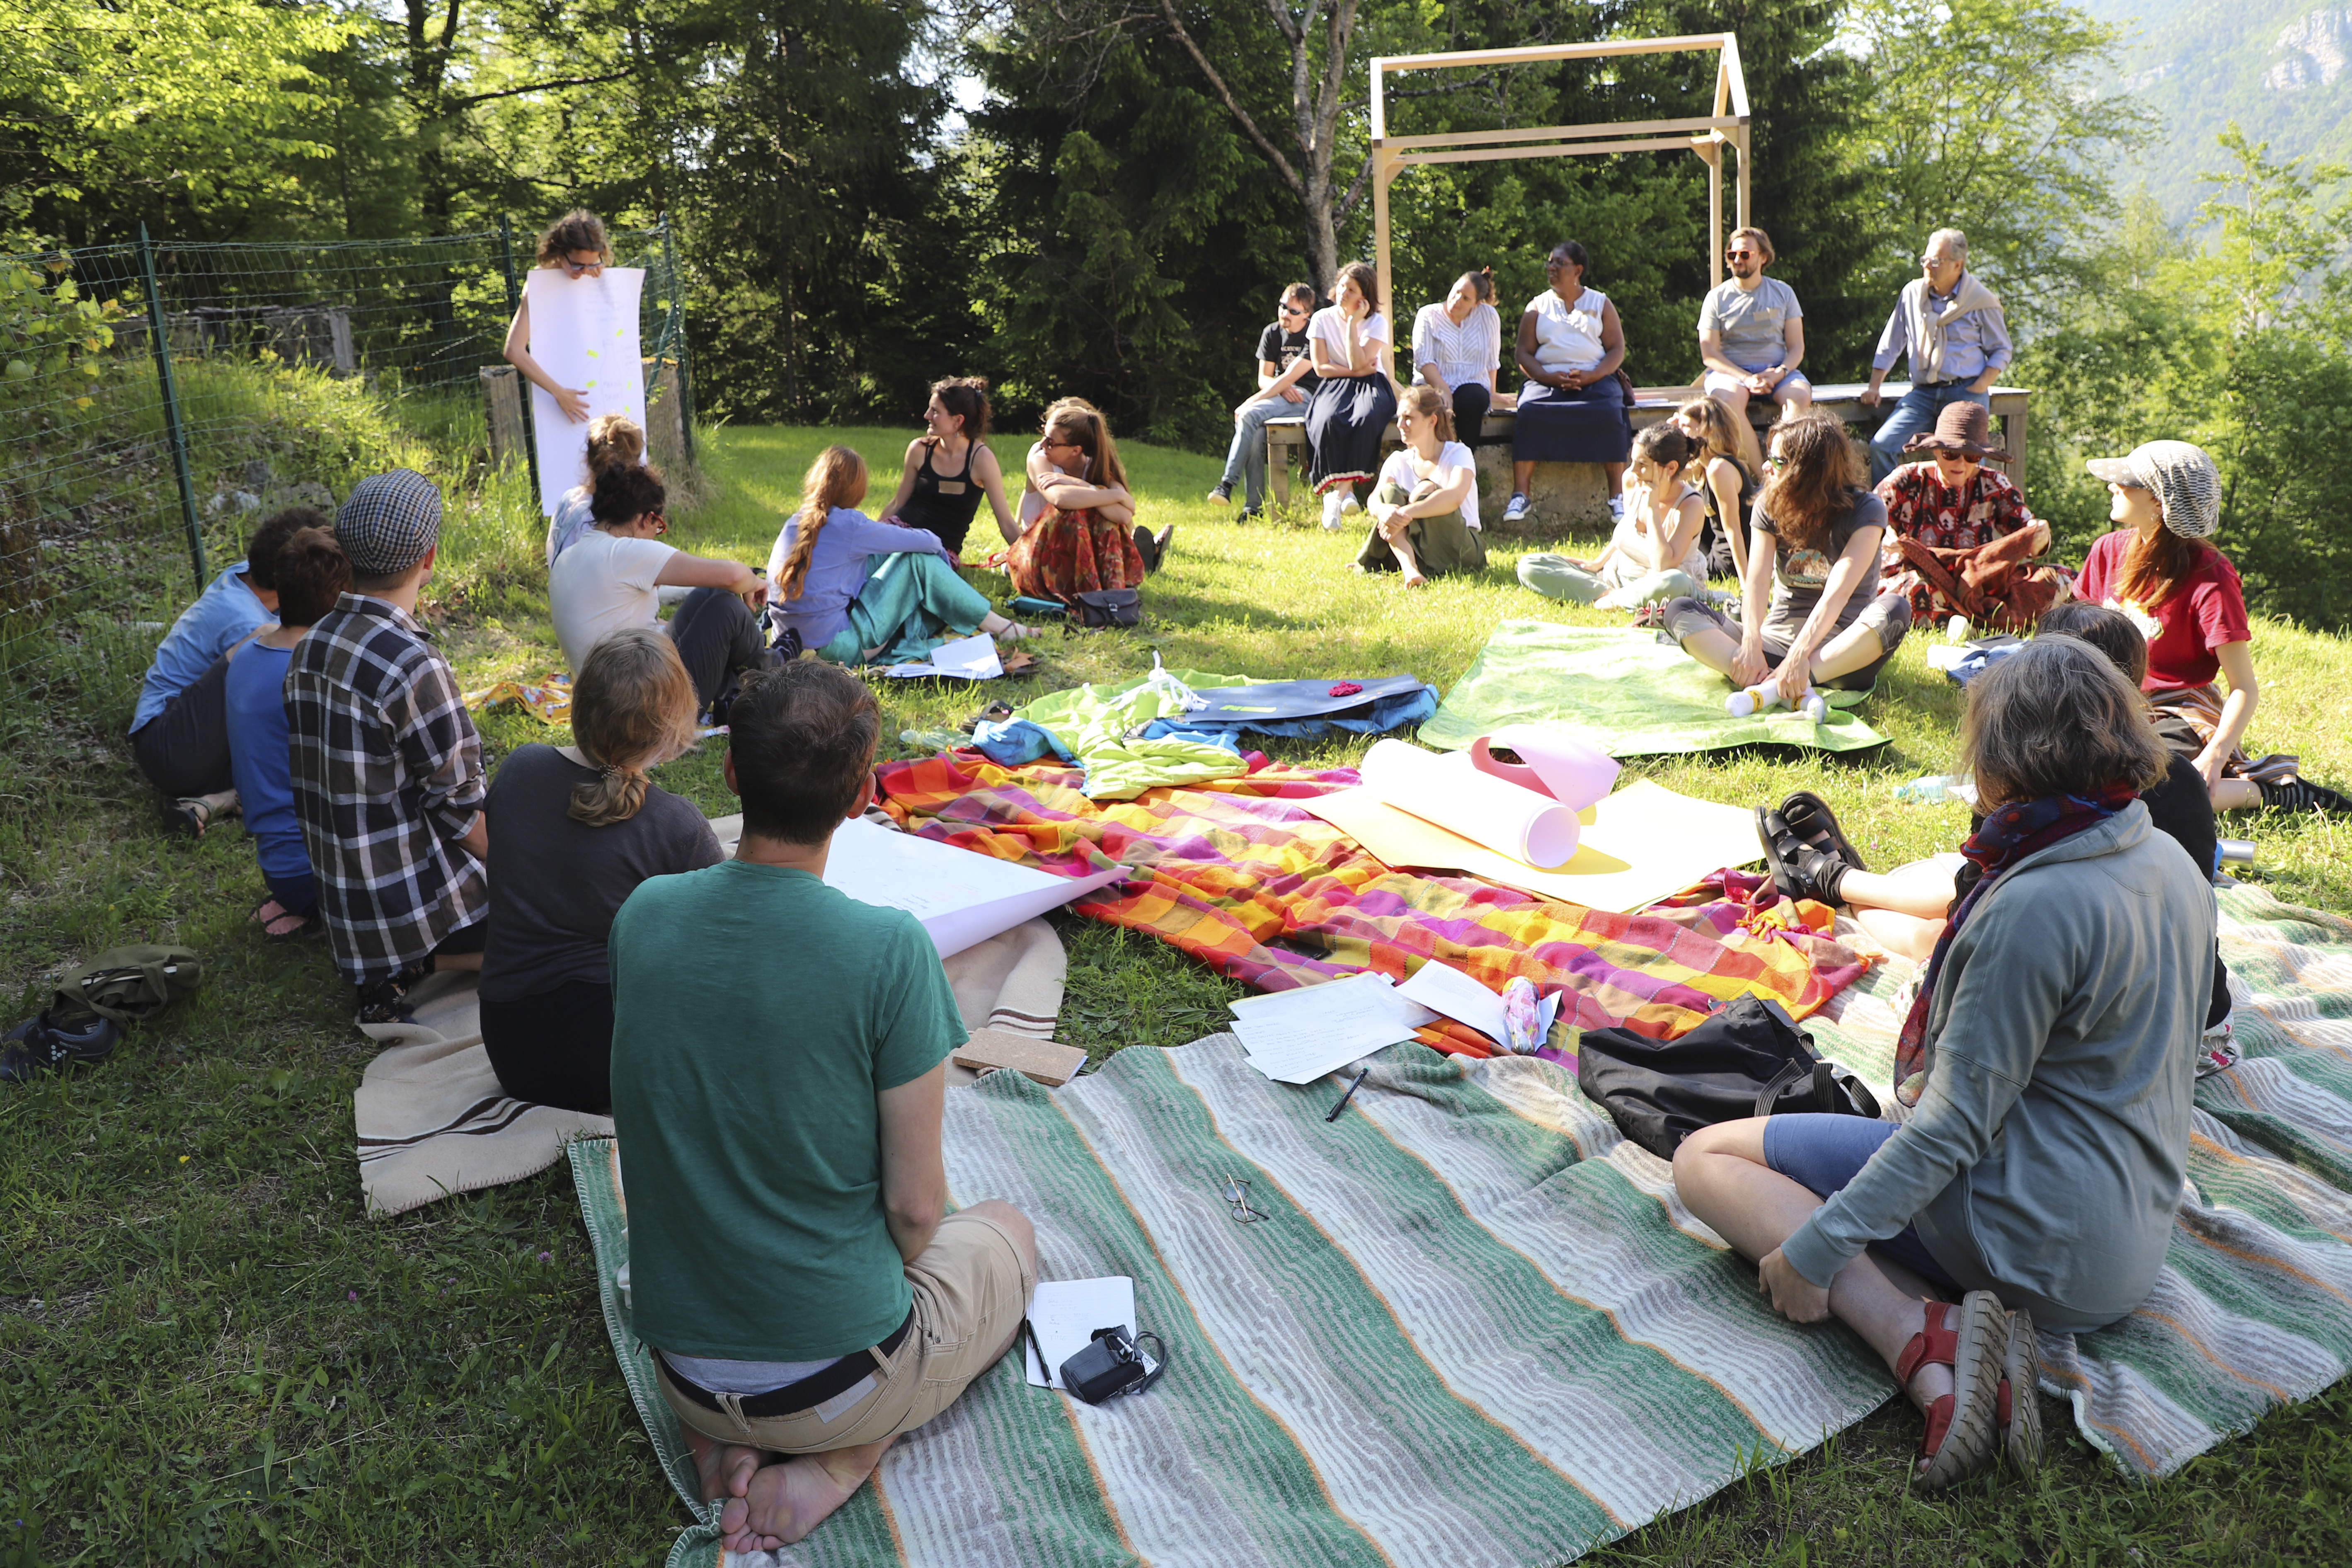 community economies practice exchange - community economies practitioners sitting in a circle on the grass sharing their workshop outcomes